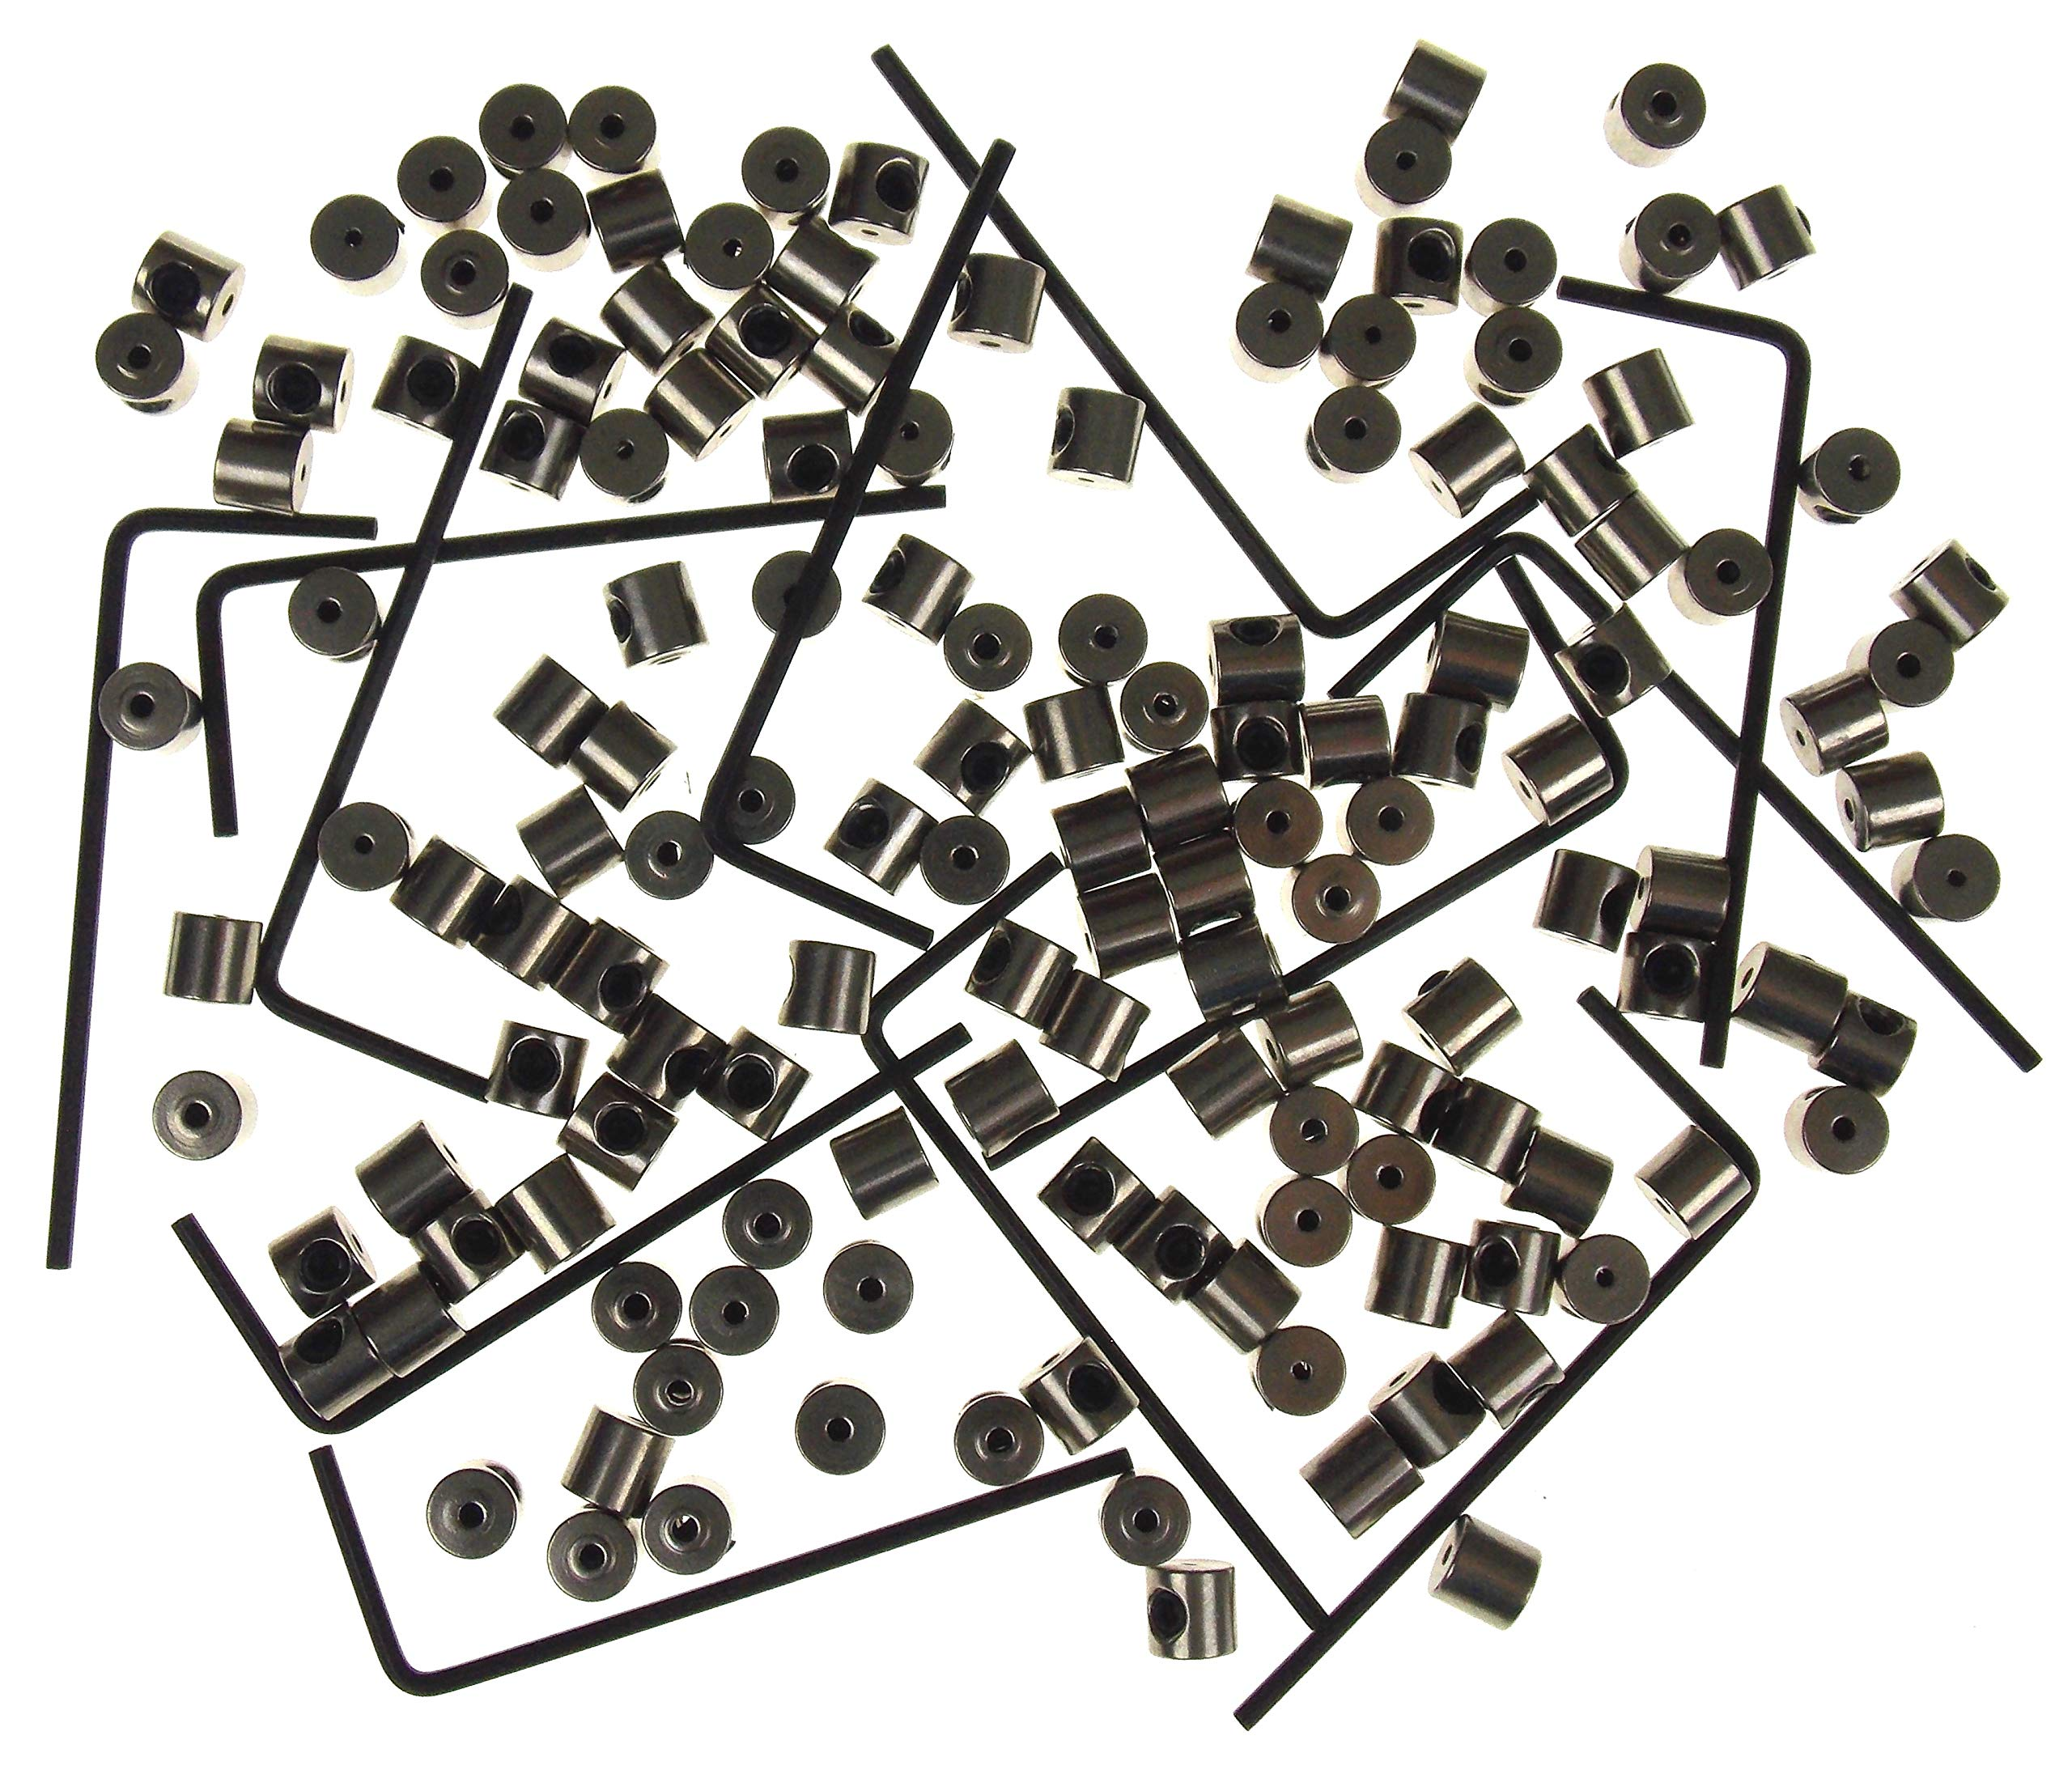 Locking Pin Backs (144) Bulk Metal Pin Keepers Bundled with Storage Case Hickoryville (White) by Hickoryville